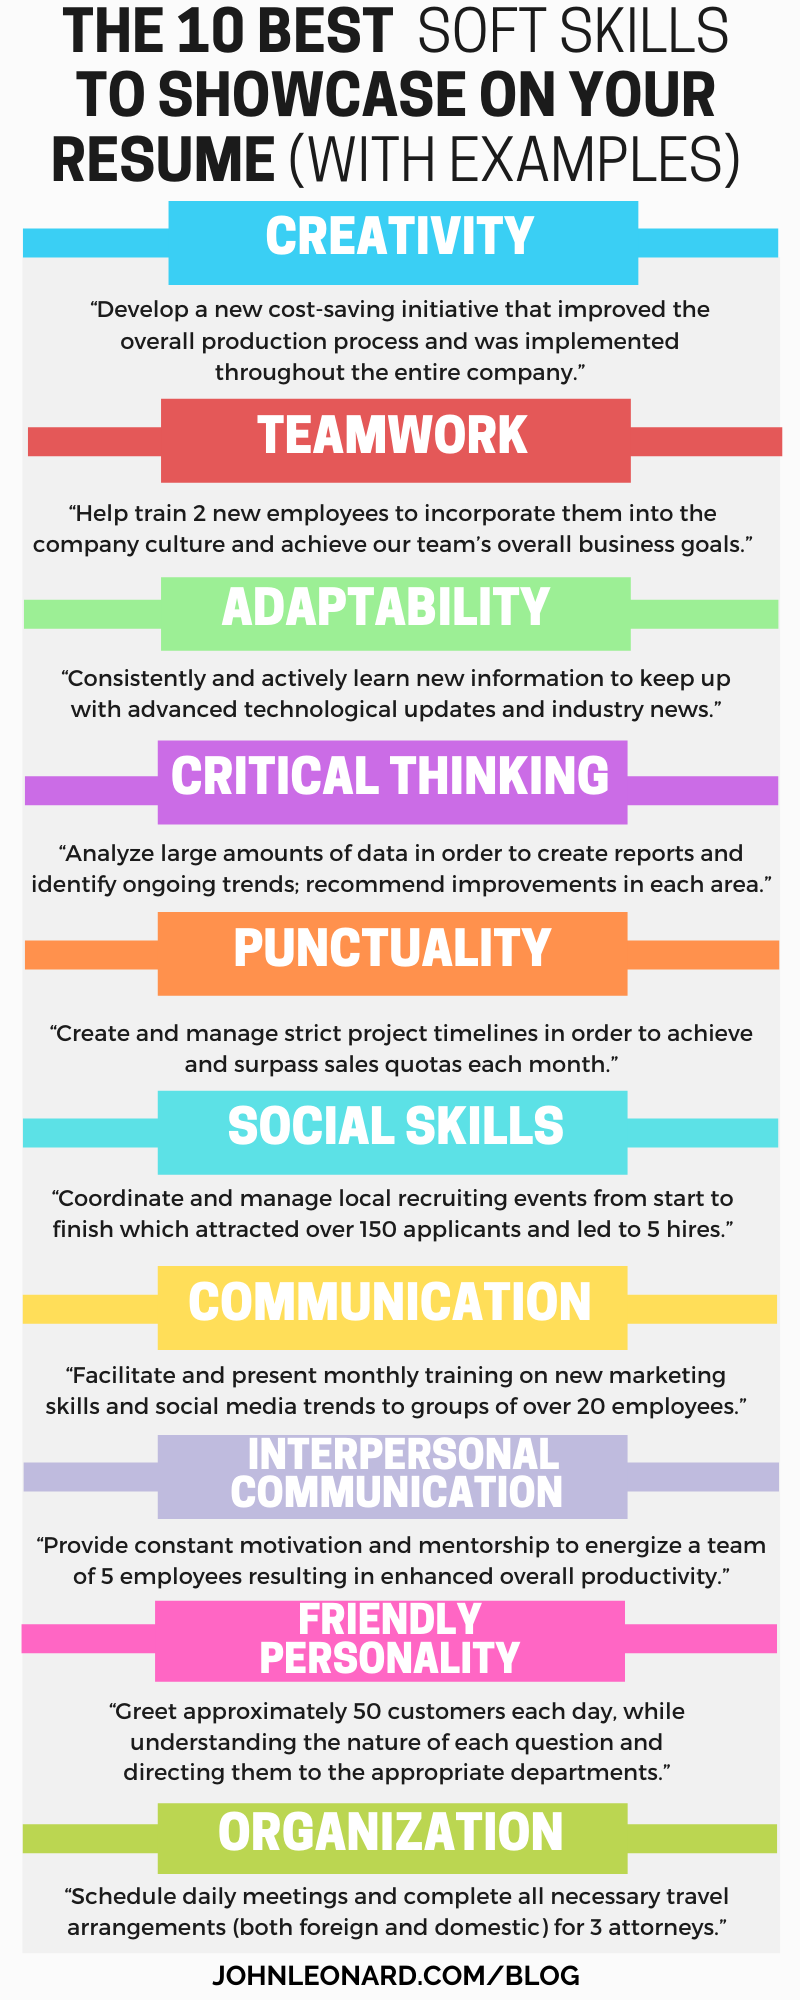 The best soft skills to showcase on your resume-1